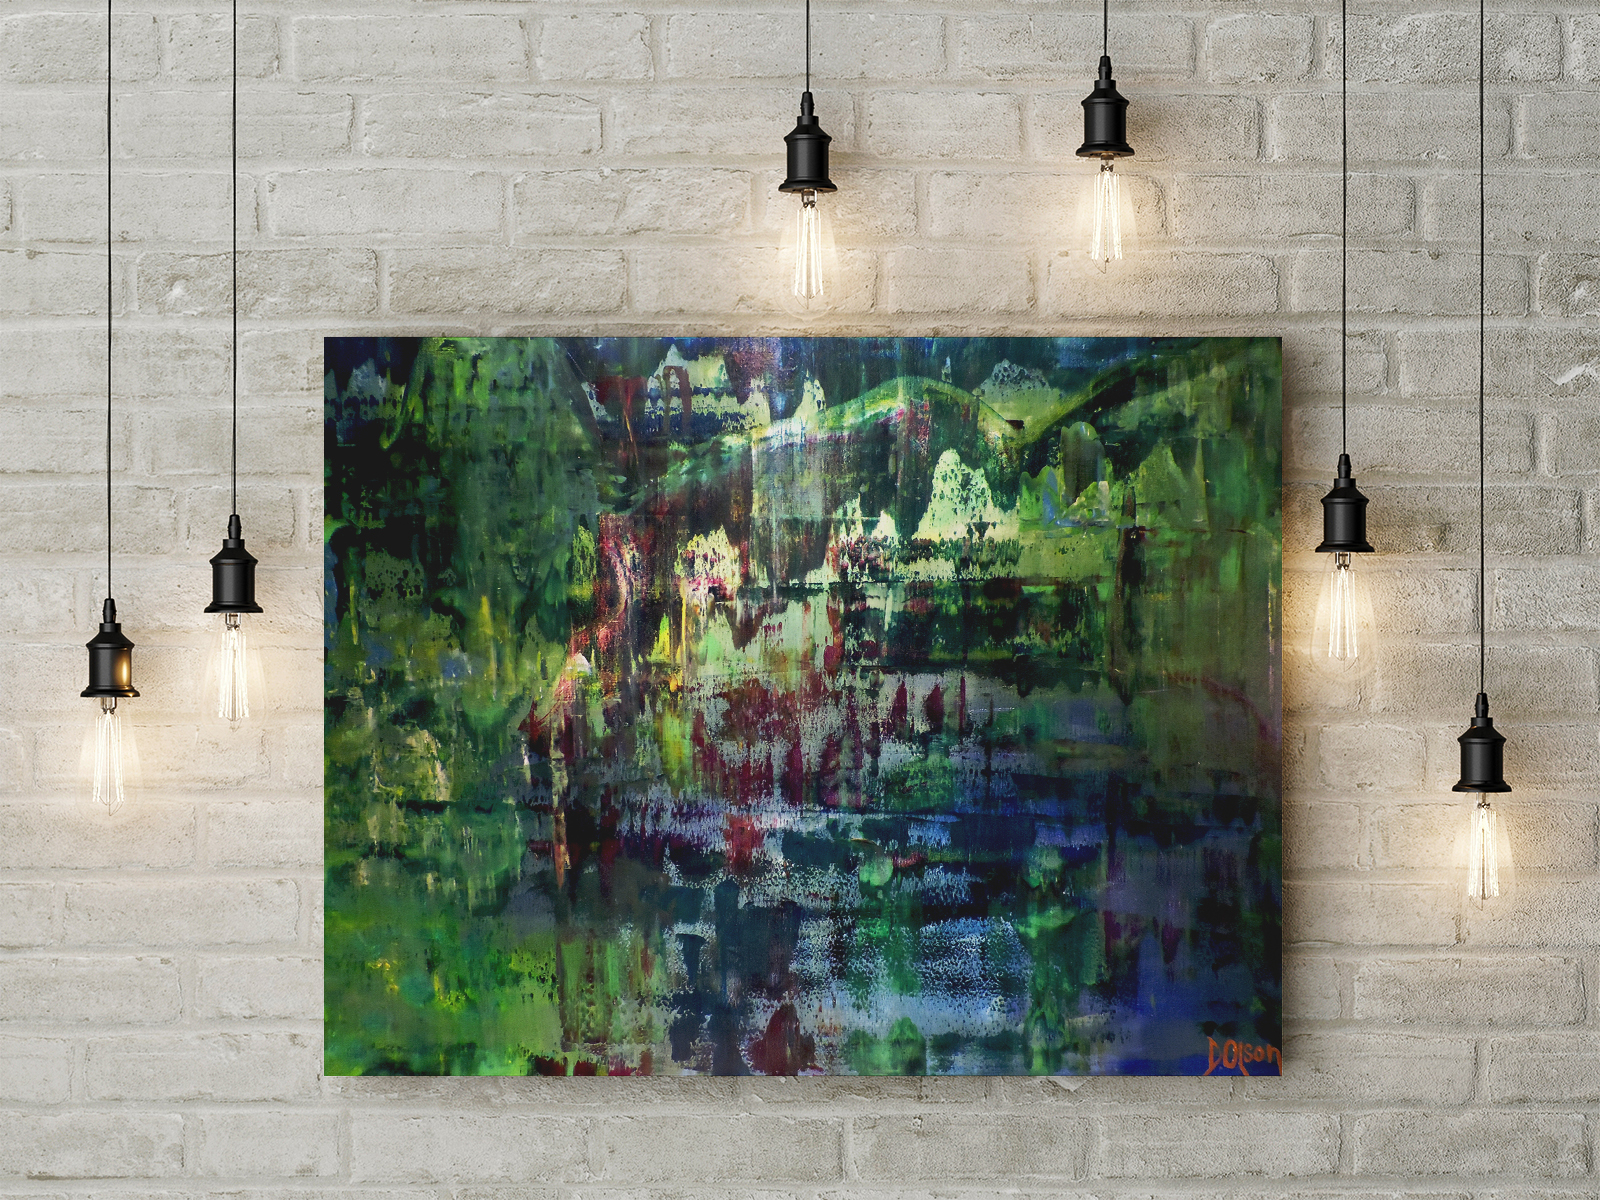 Abstract Impressionistic painting of mountains, forest and lakeon wall.